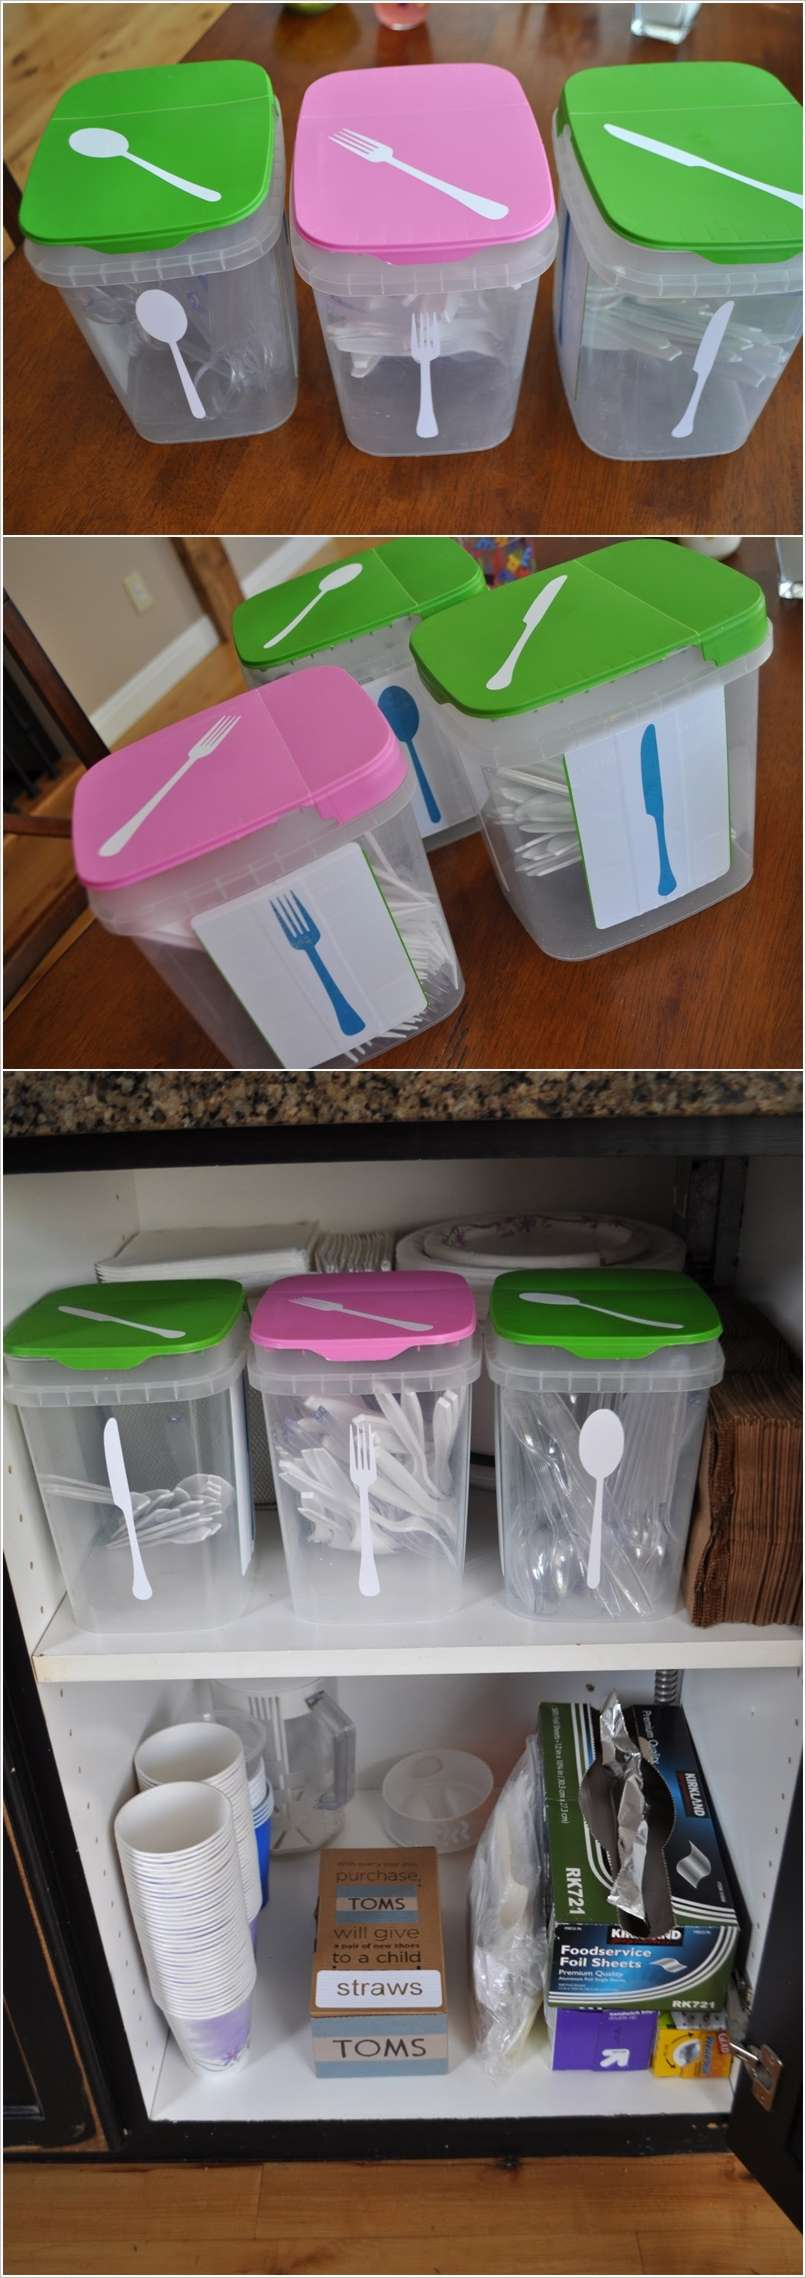 10 Cutlery Storage Ideas for Your Kitchen